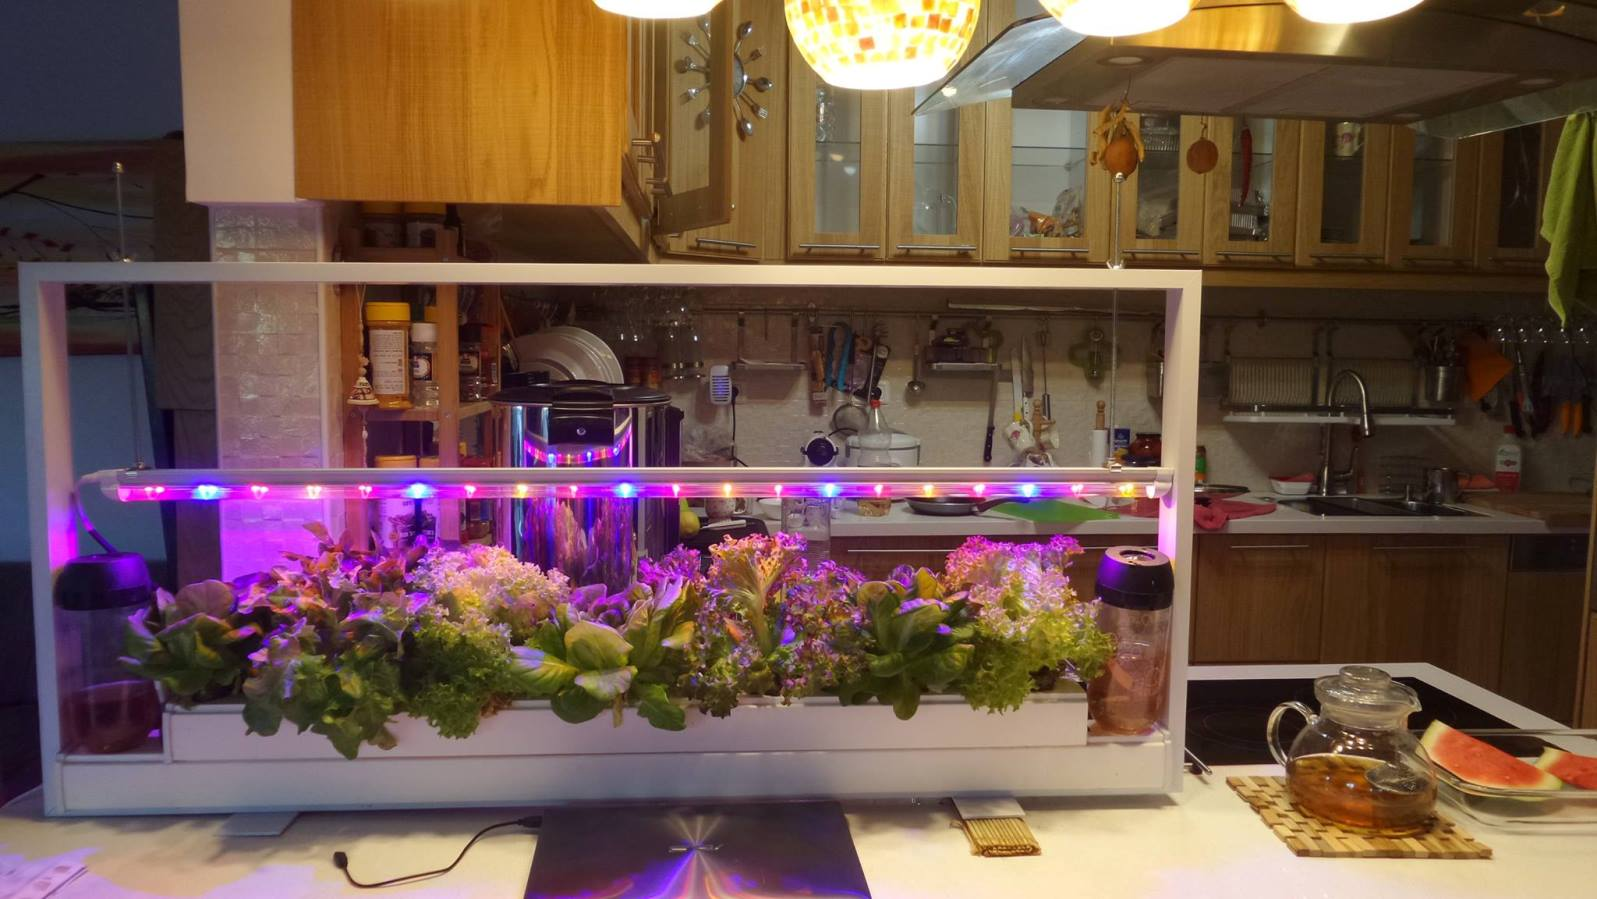 Home aeroponics kits from Aleinu will soon be available for sale. Photo via Facebook